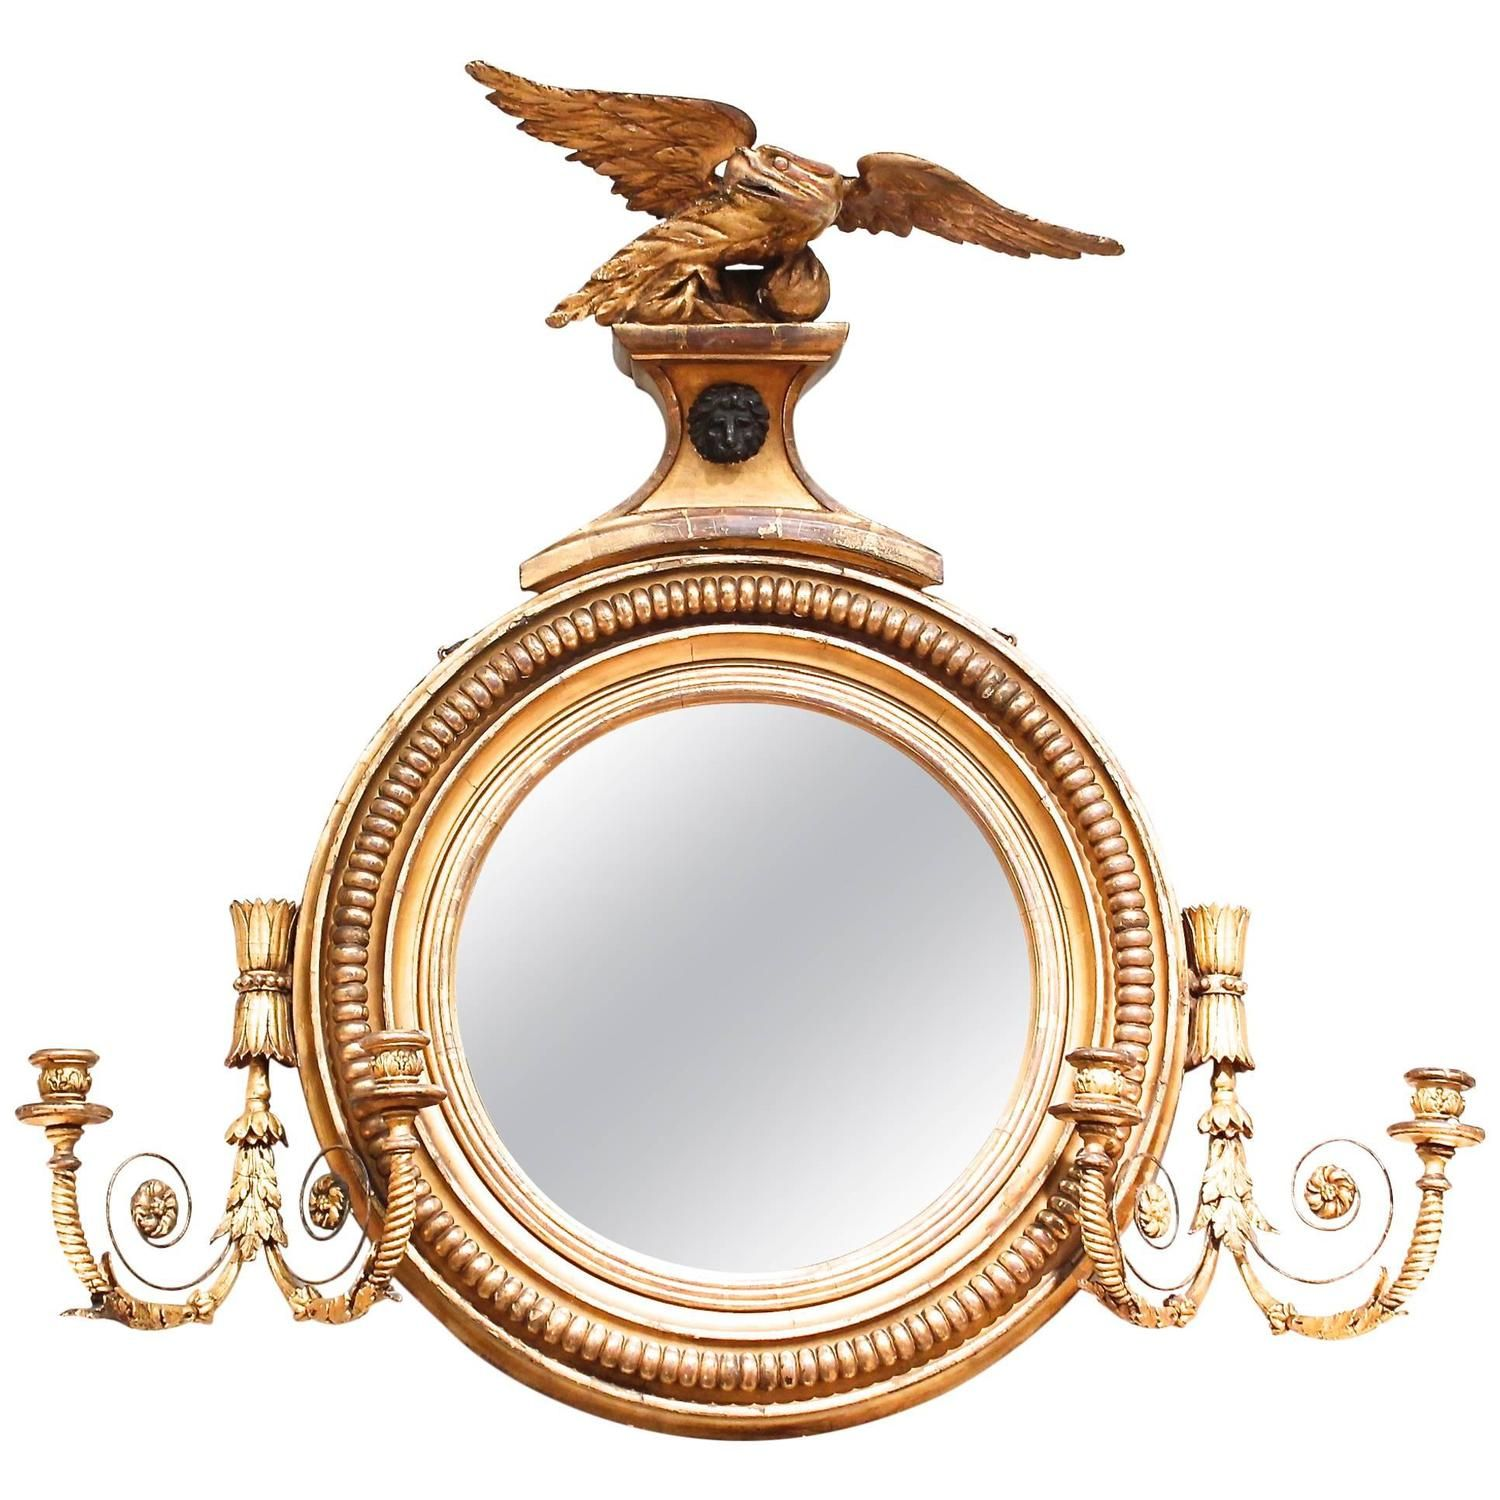 English Regency Giltwood Convex Girandole Mirror with Eagle   From a unique collection of antique and modern wall mirrors at https://www.1stdibs.com/furniture/mirrors/wall-mirrors/